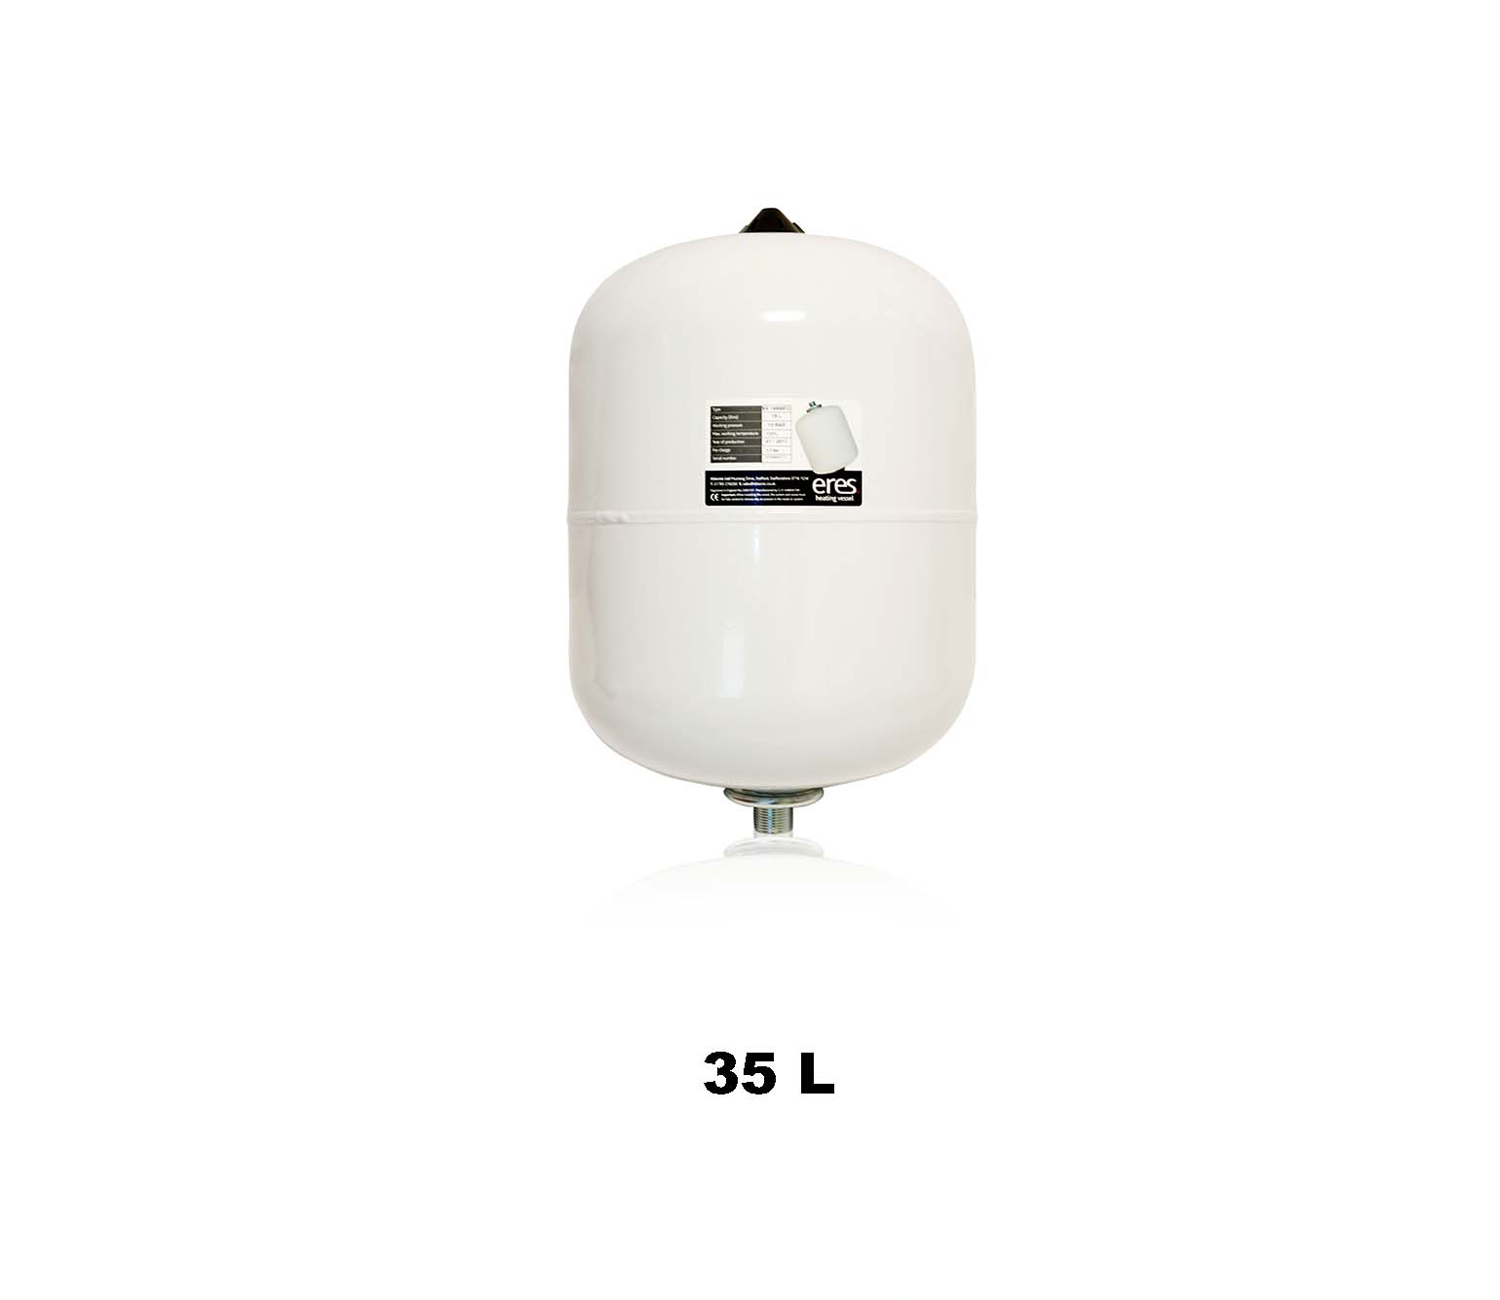 Solar_expansion_Vessel_35L_high_temp.jpg